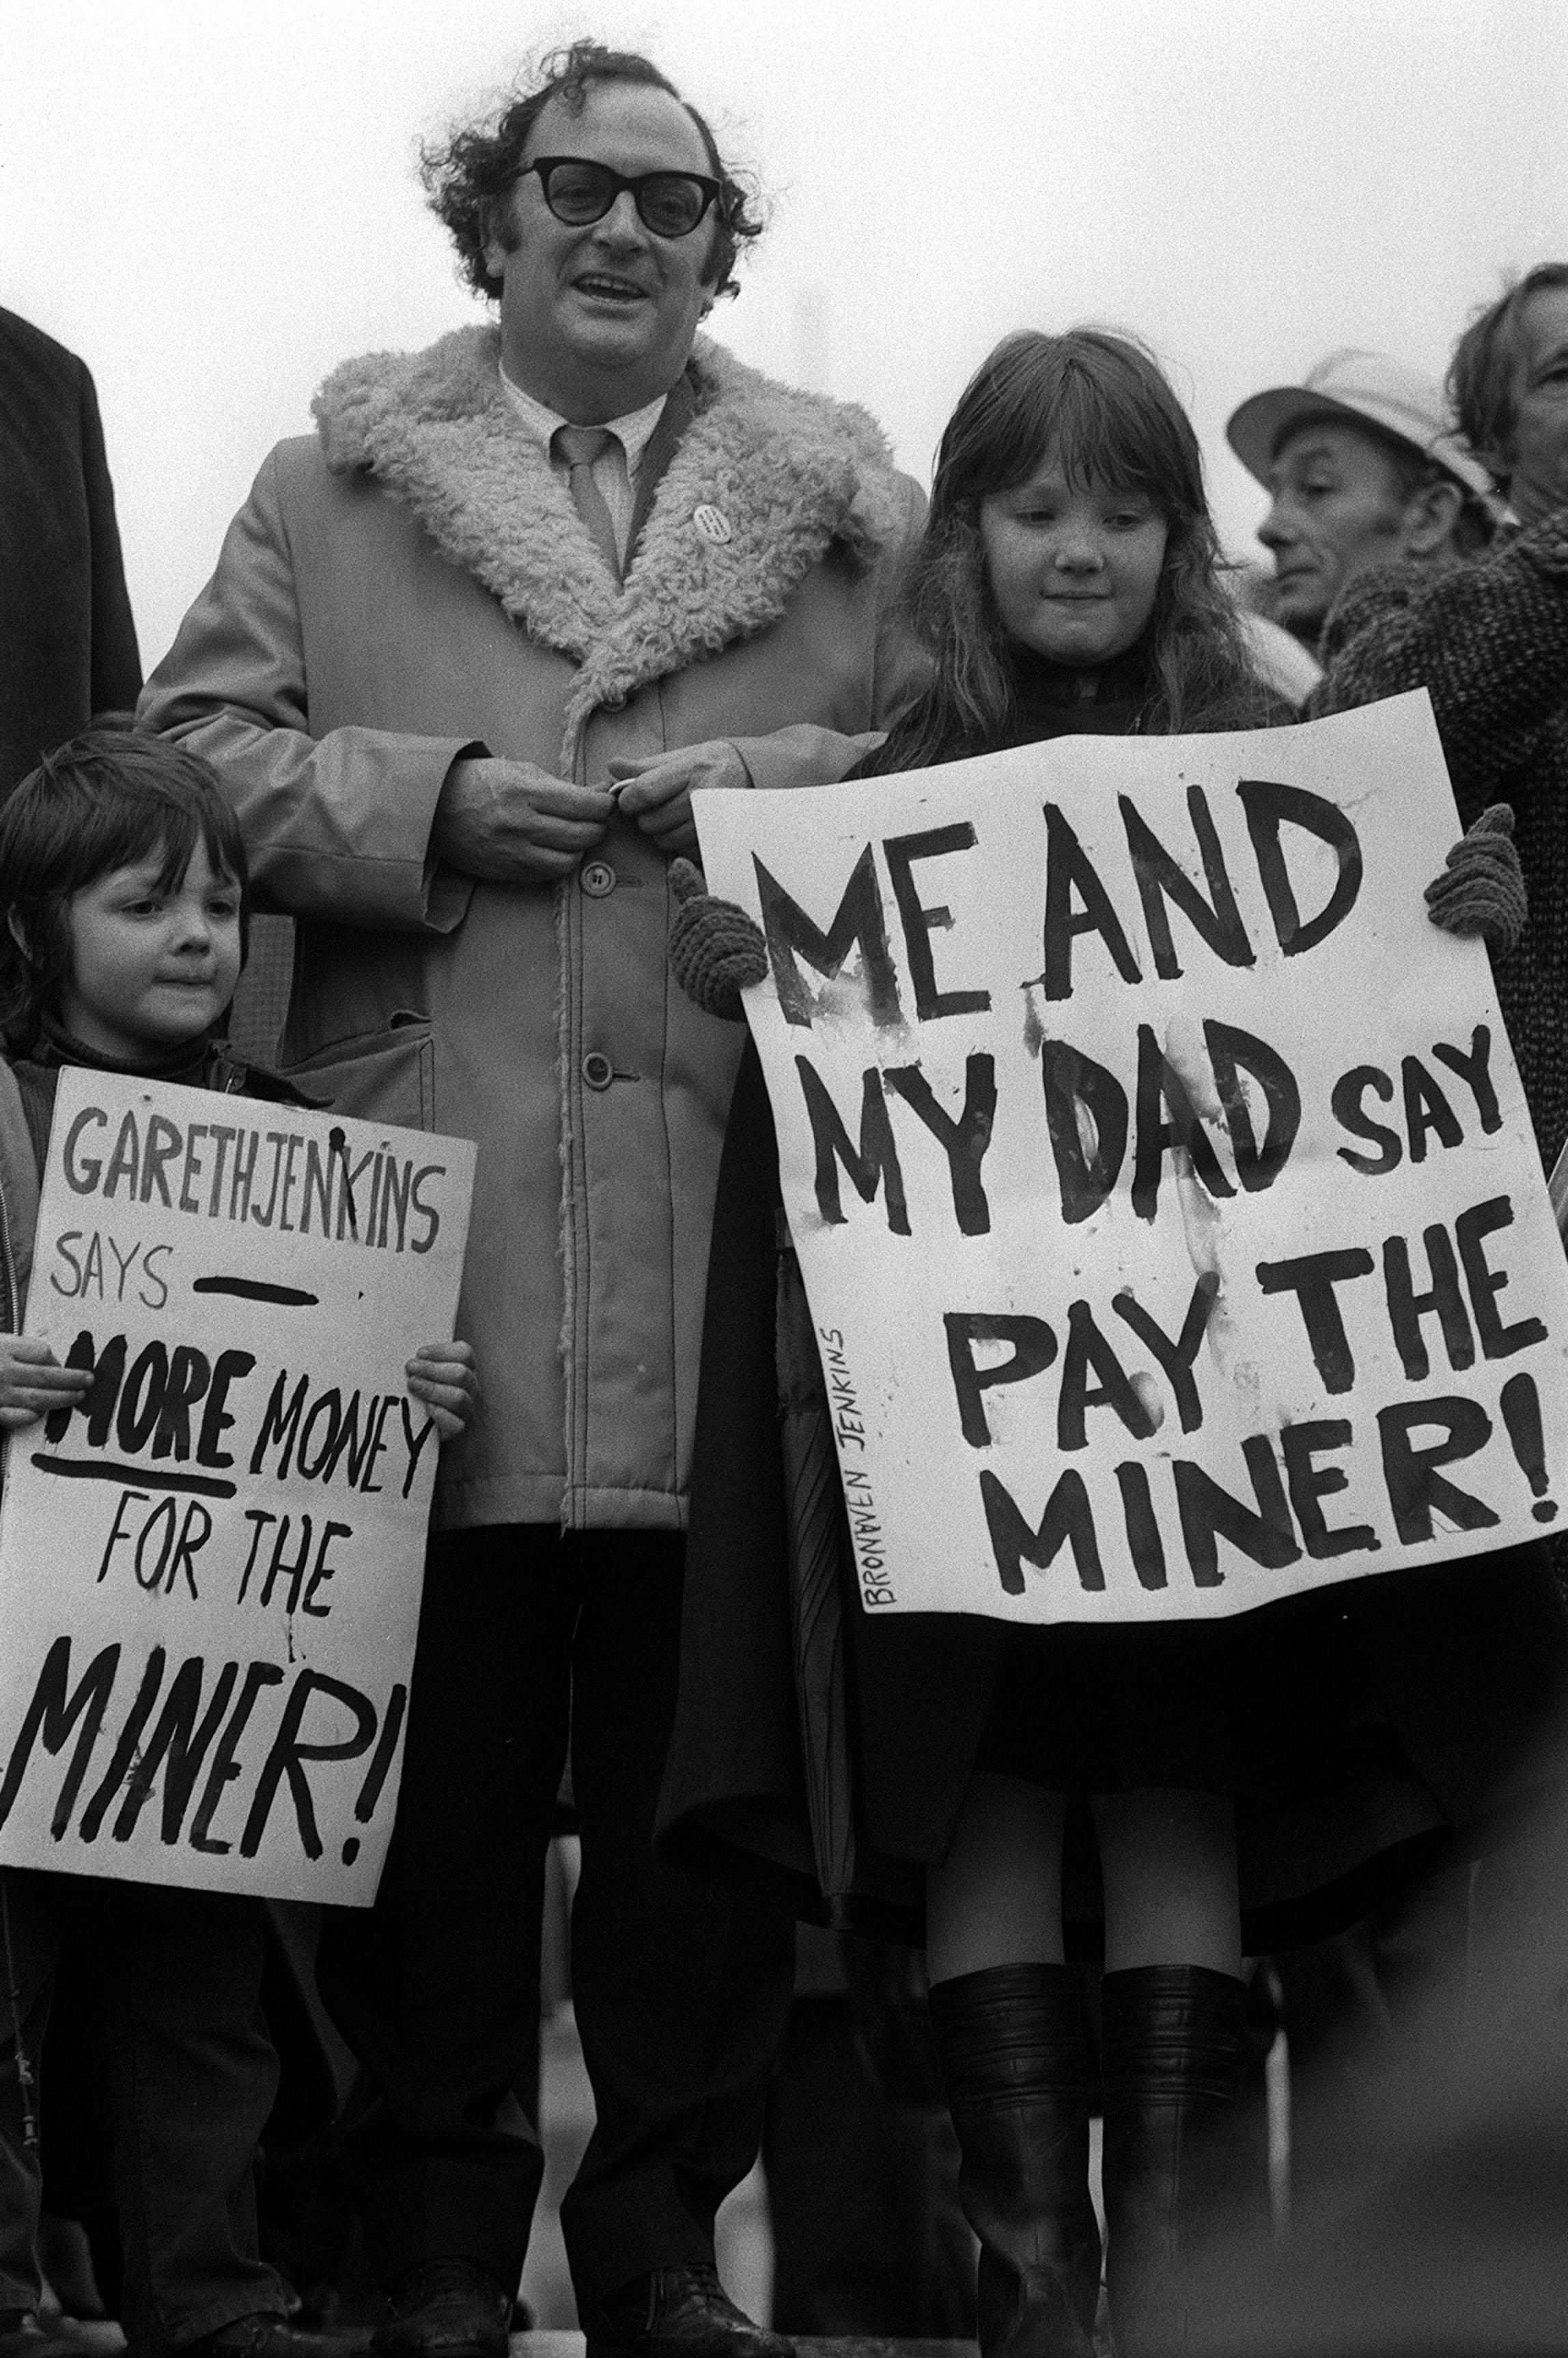 They may not be Union Members, but 5 year old Gareth, left and 8 year old Bronwen supported their Father Mr. Clive Jenkins, of the Association of Scientific Technical and Managerial Staffs when he rallied to the miners' cause in London's Trafalgar Square.